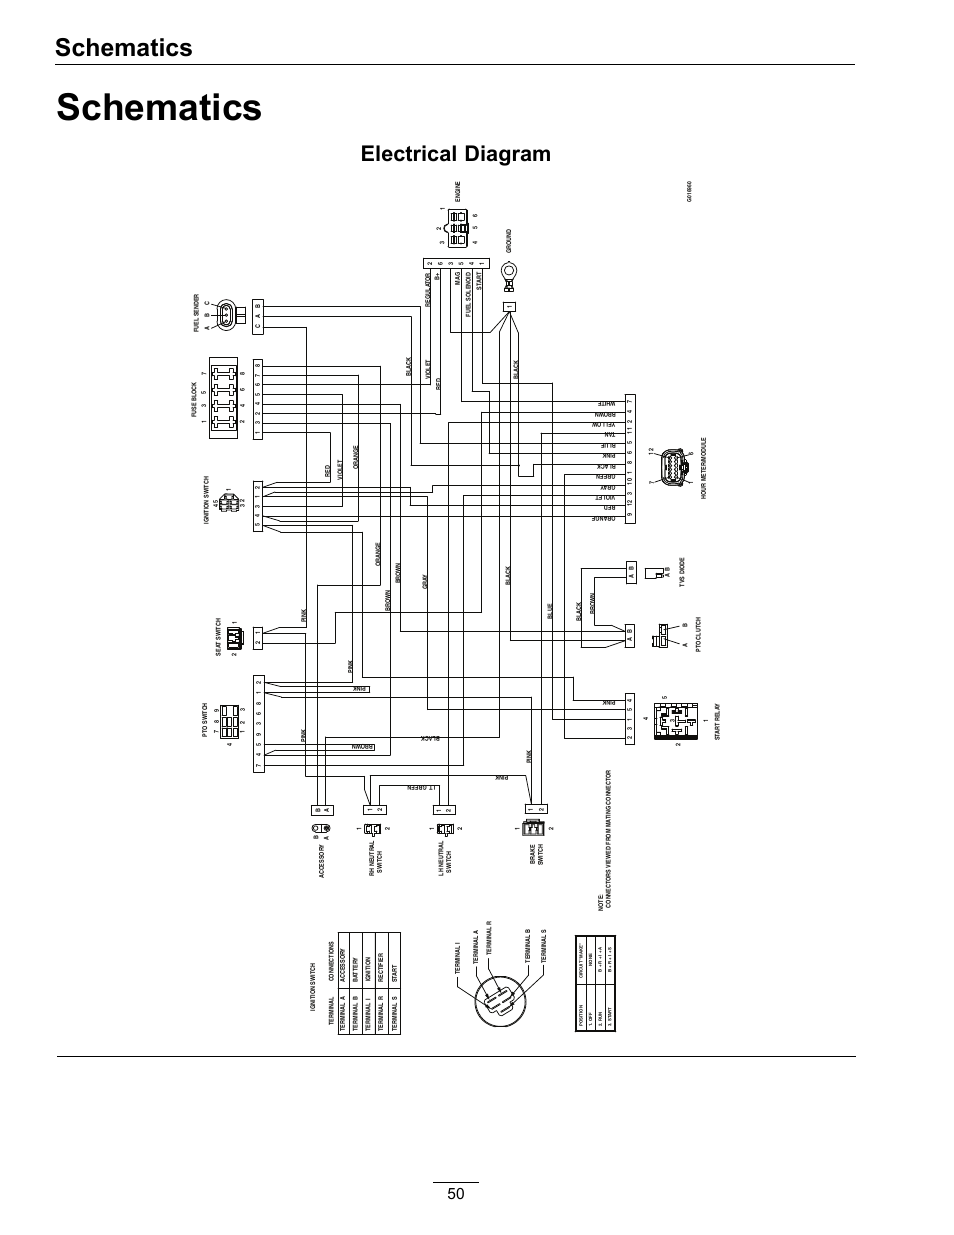 Schematics Electrical Diagram Exmark Lazer Z E Series 312 User Manual Page 50 60 Original Mode